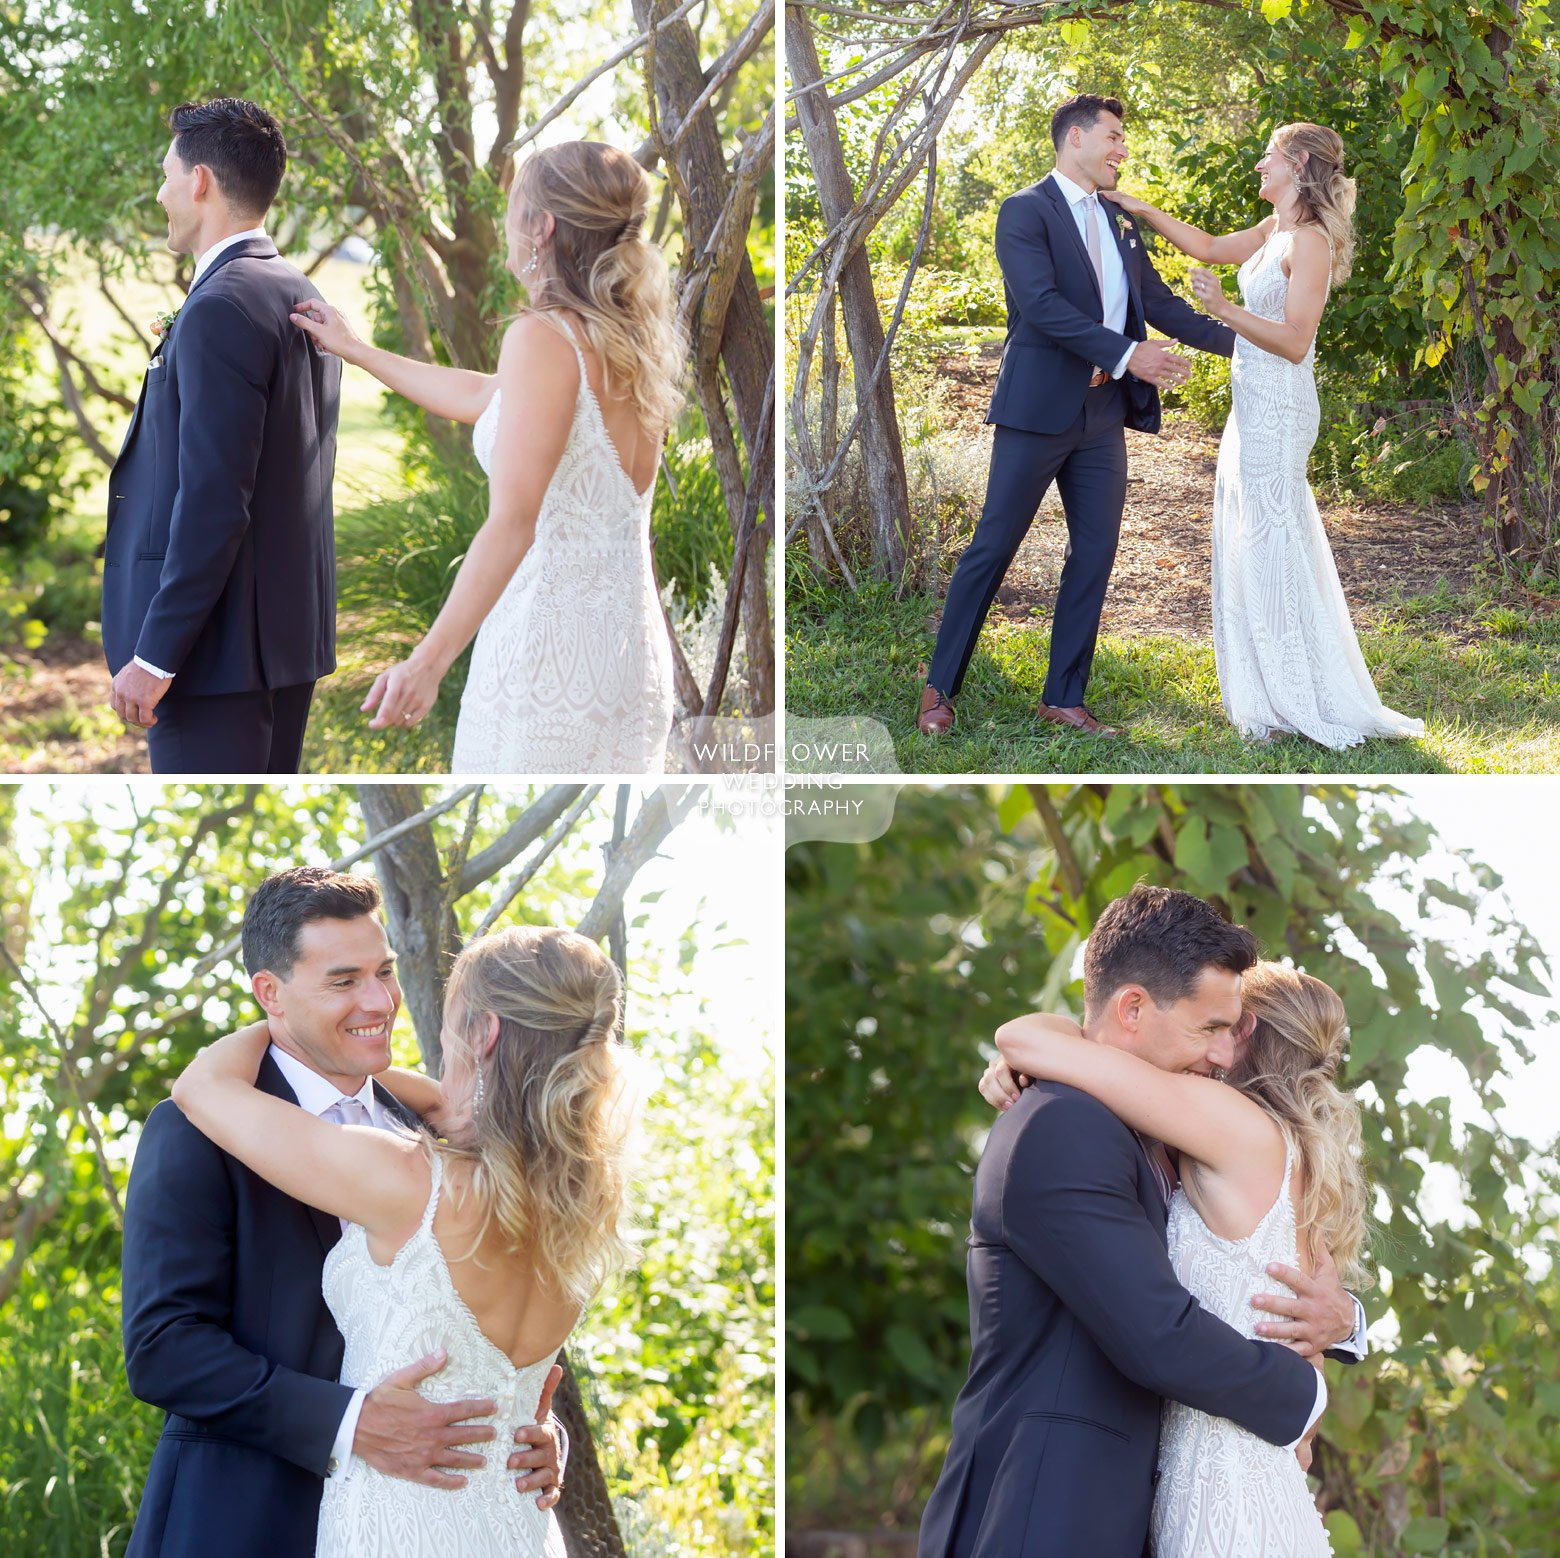 First look between bride and groom at Blue Bell Farm.